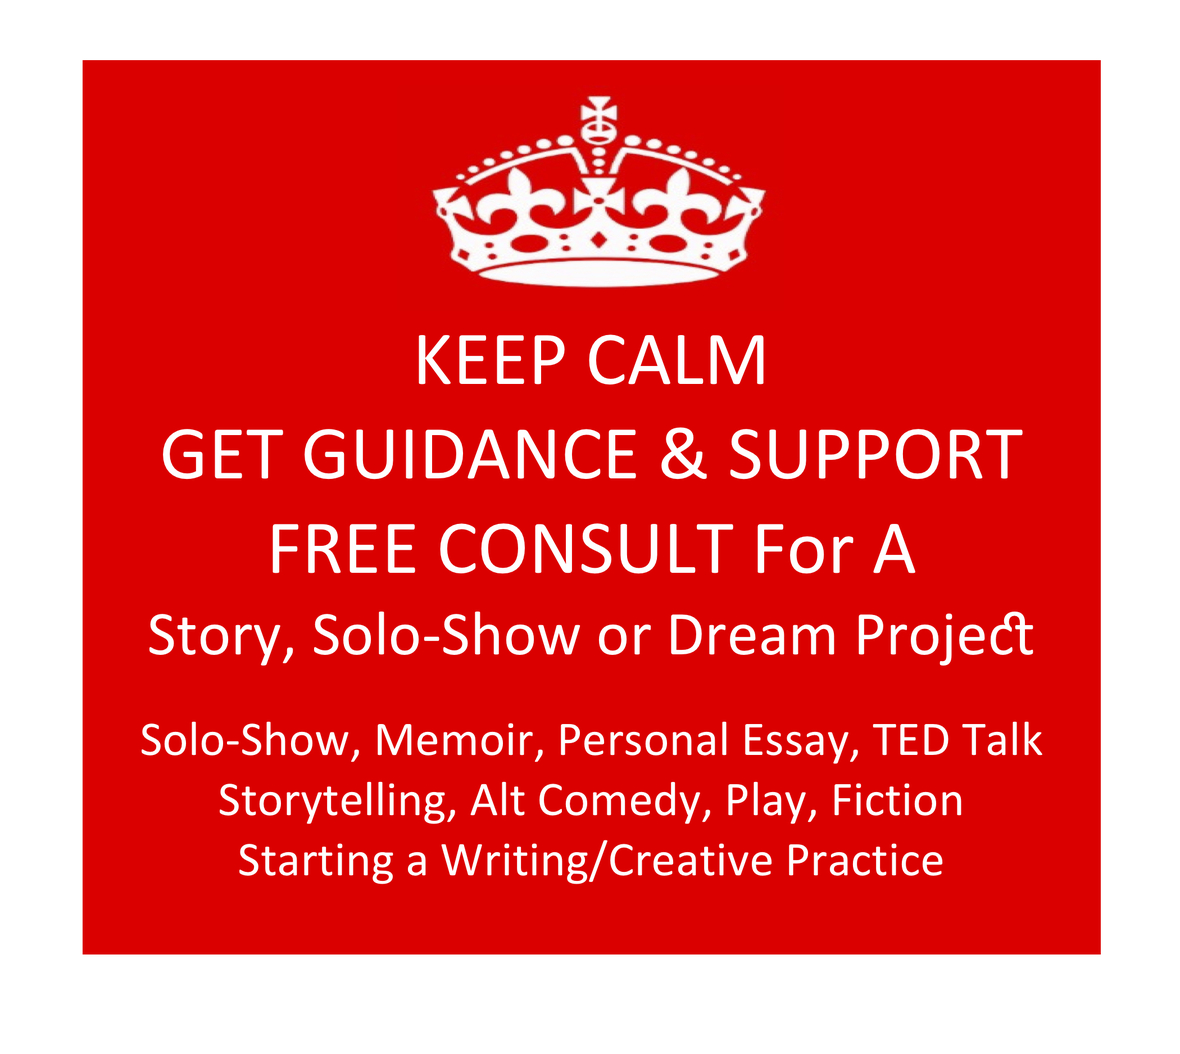 Keep Calm Free Consult Story Solo-Show Project- newsletter